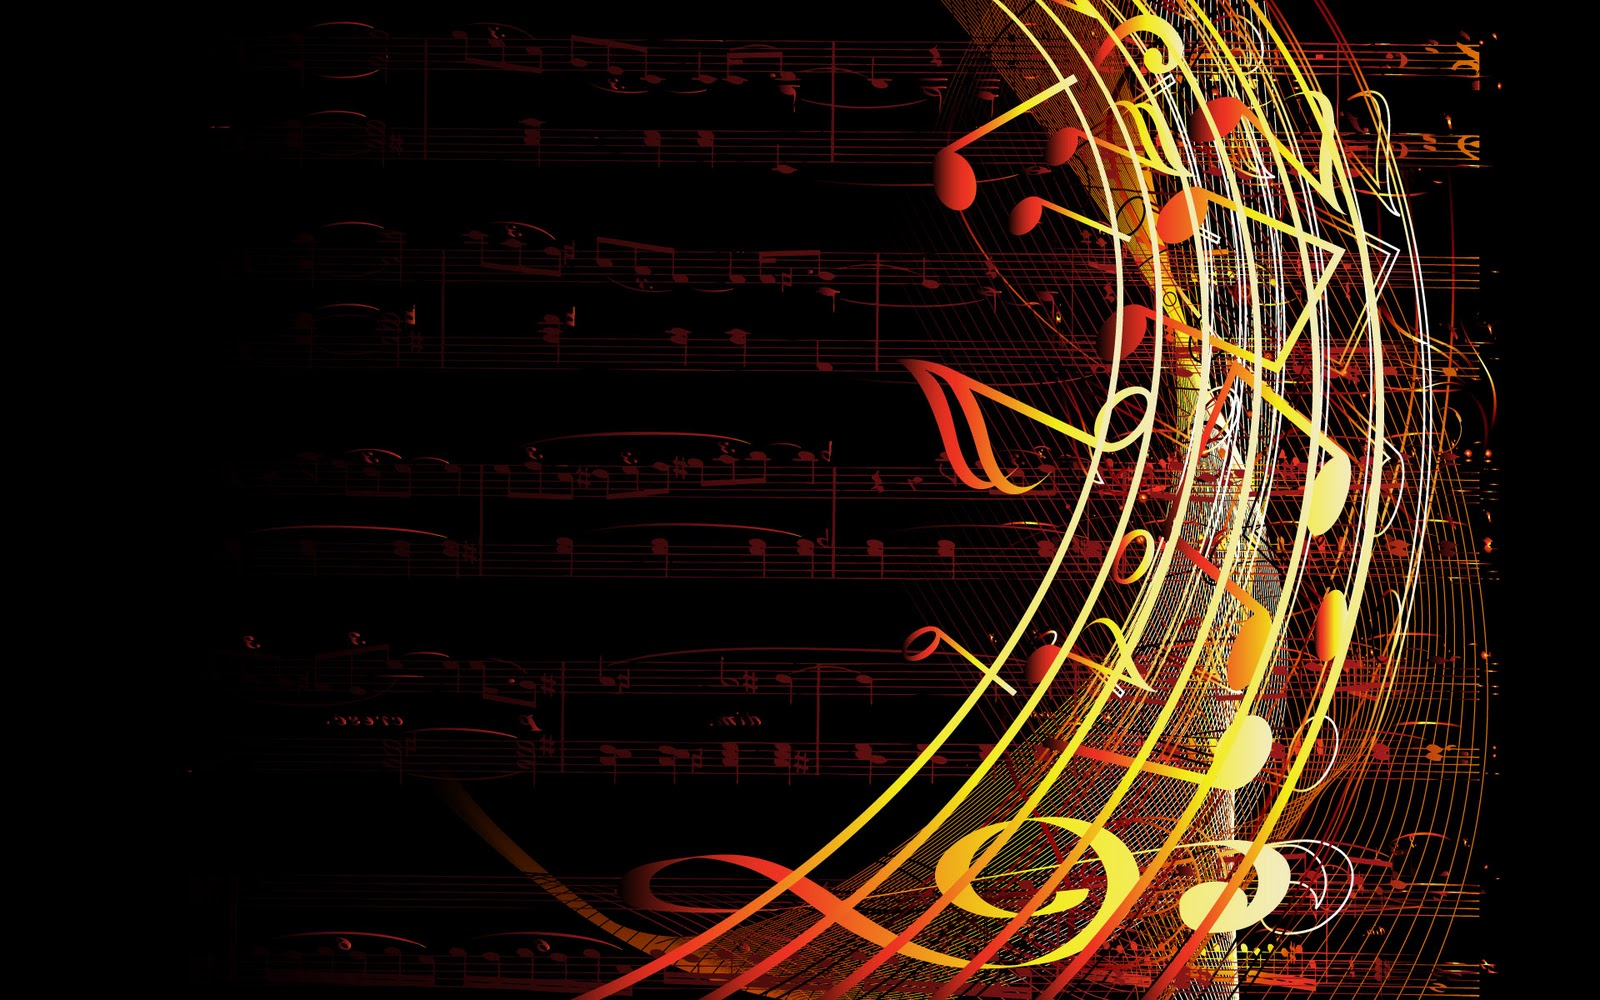 Notes Abstract Wallpaper on this Abstract Graphic Wallpaper website